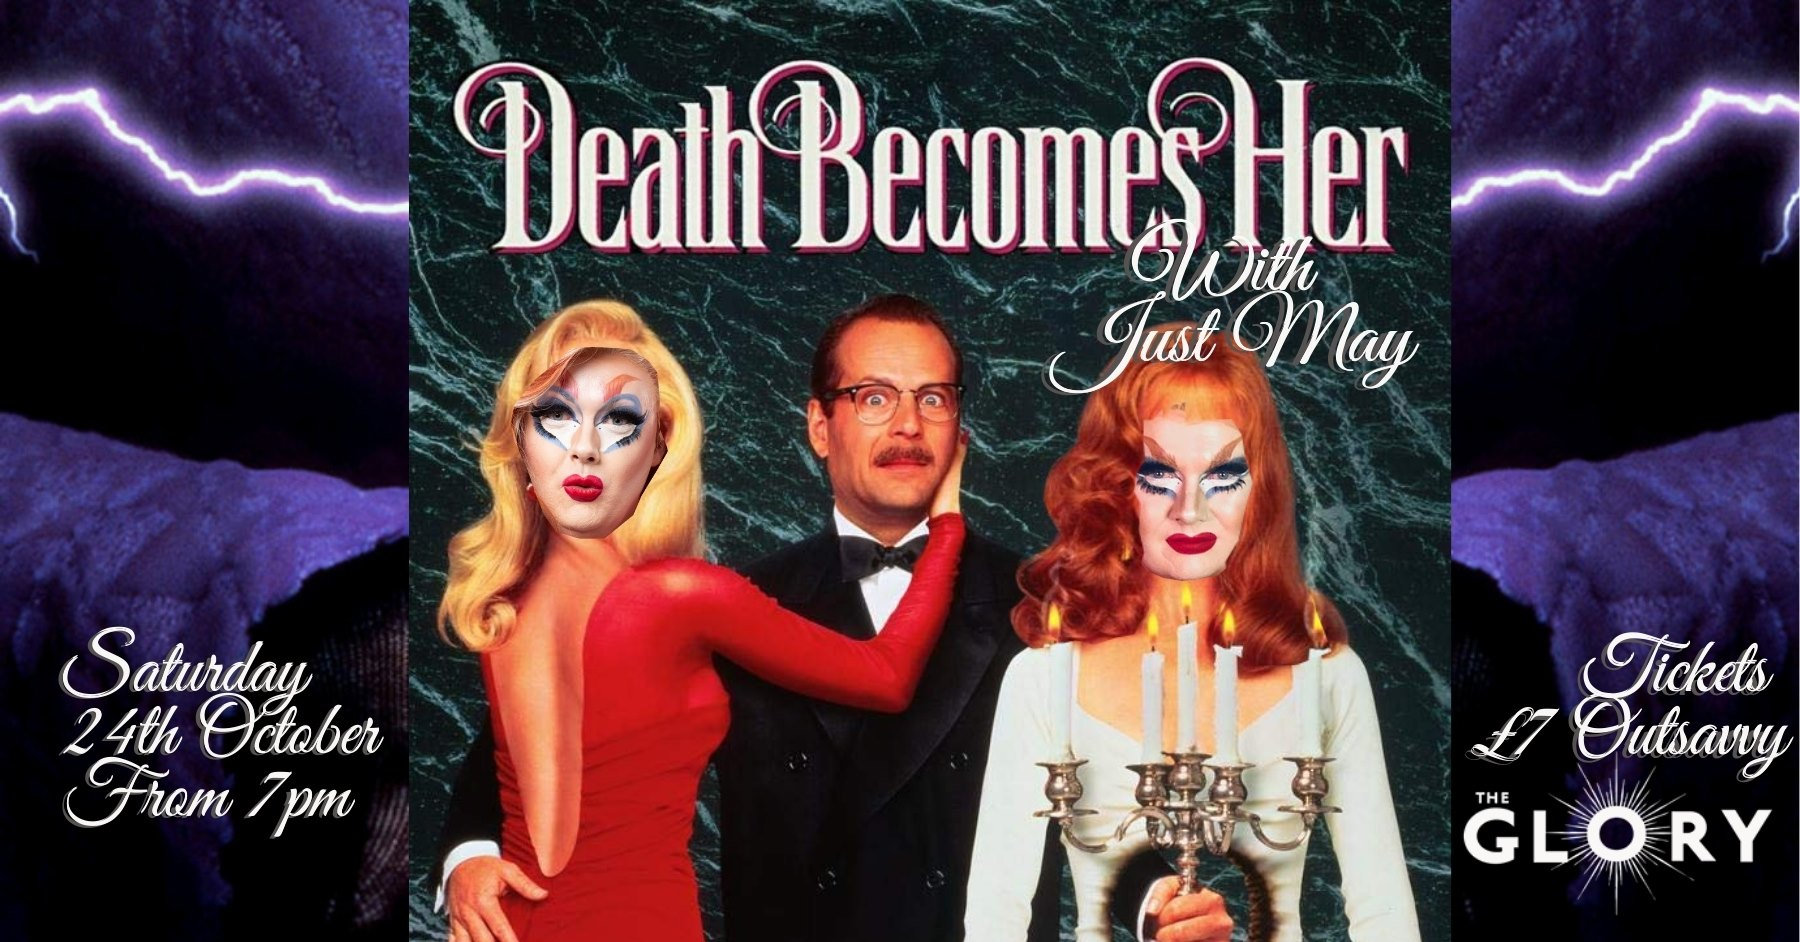 Just May presents Death Becomes Her